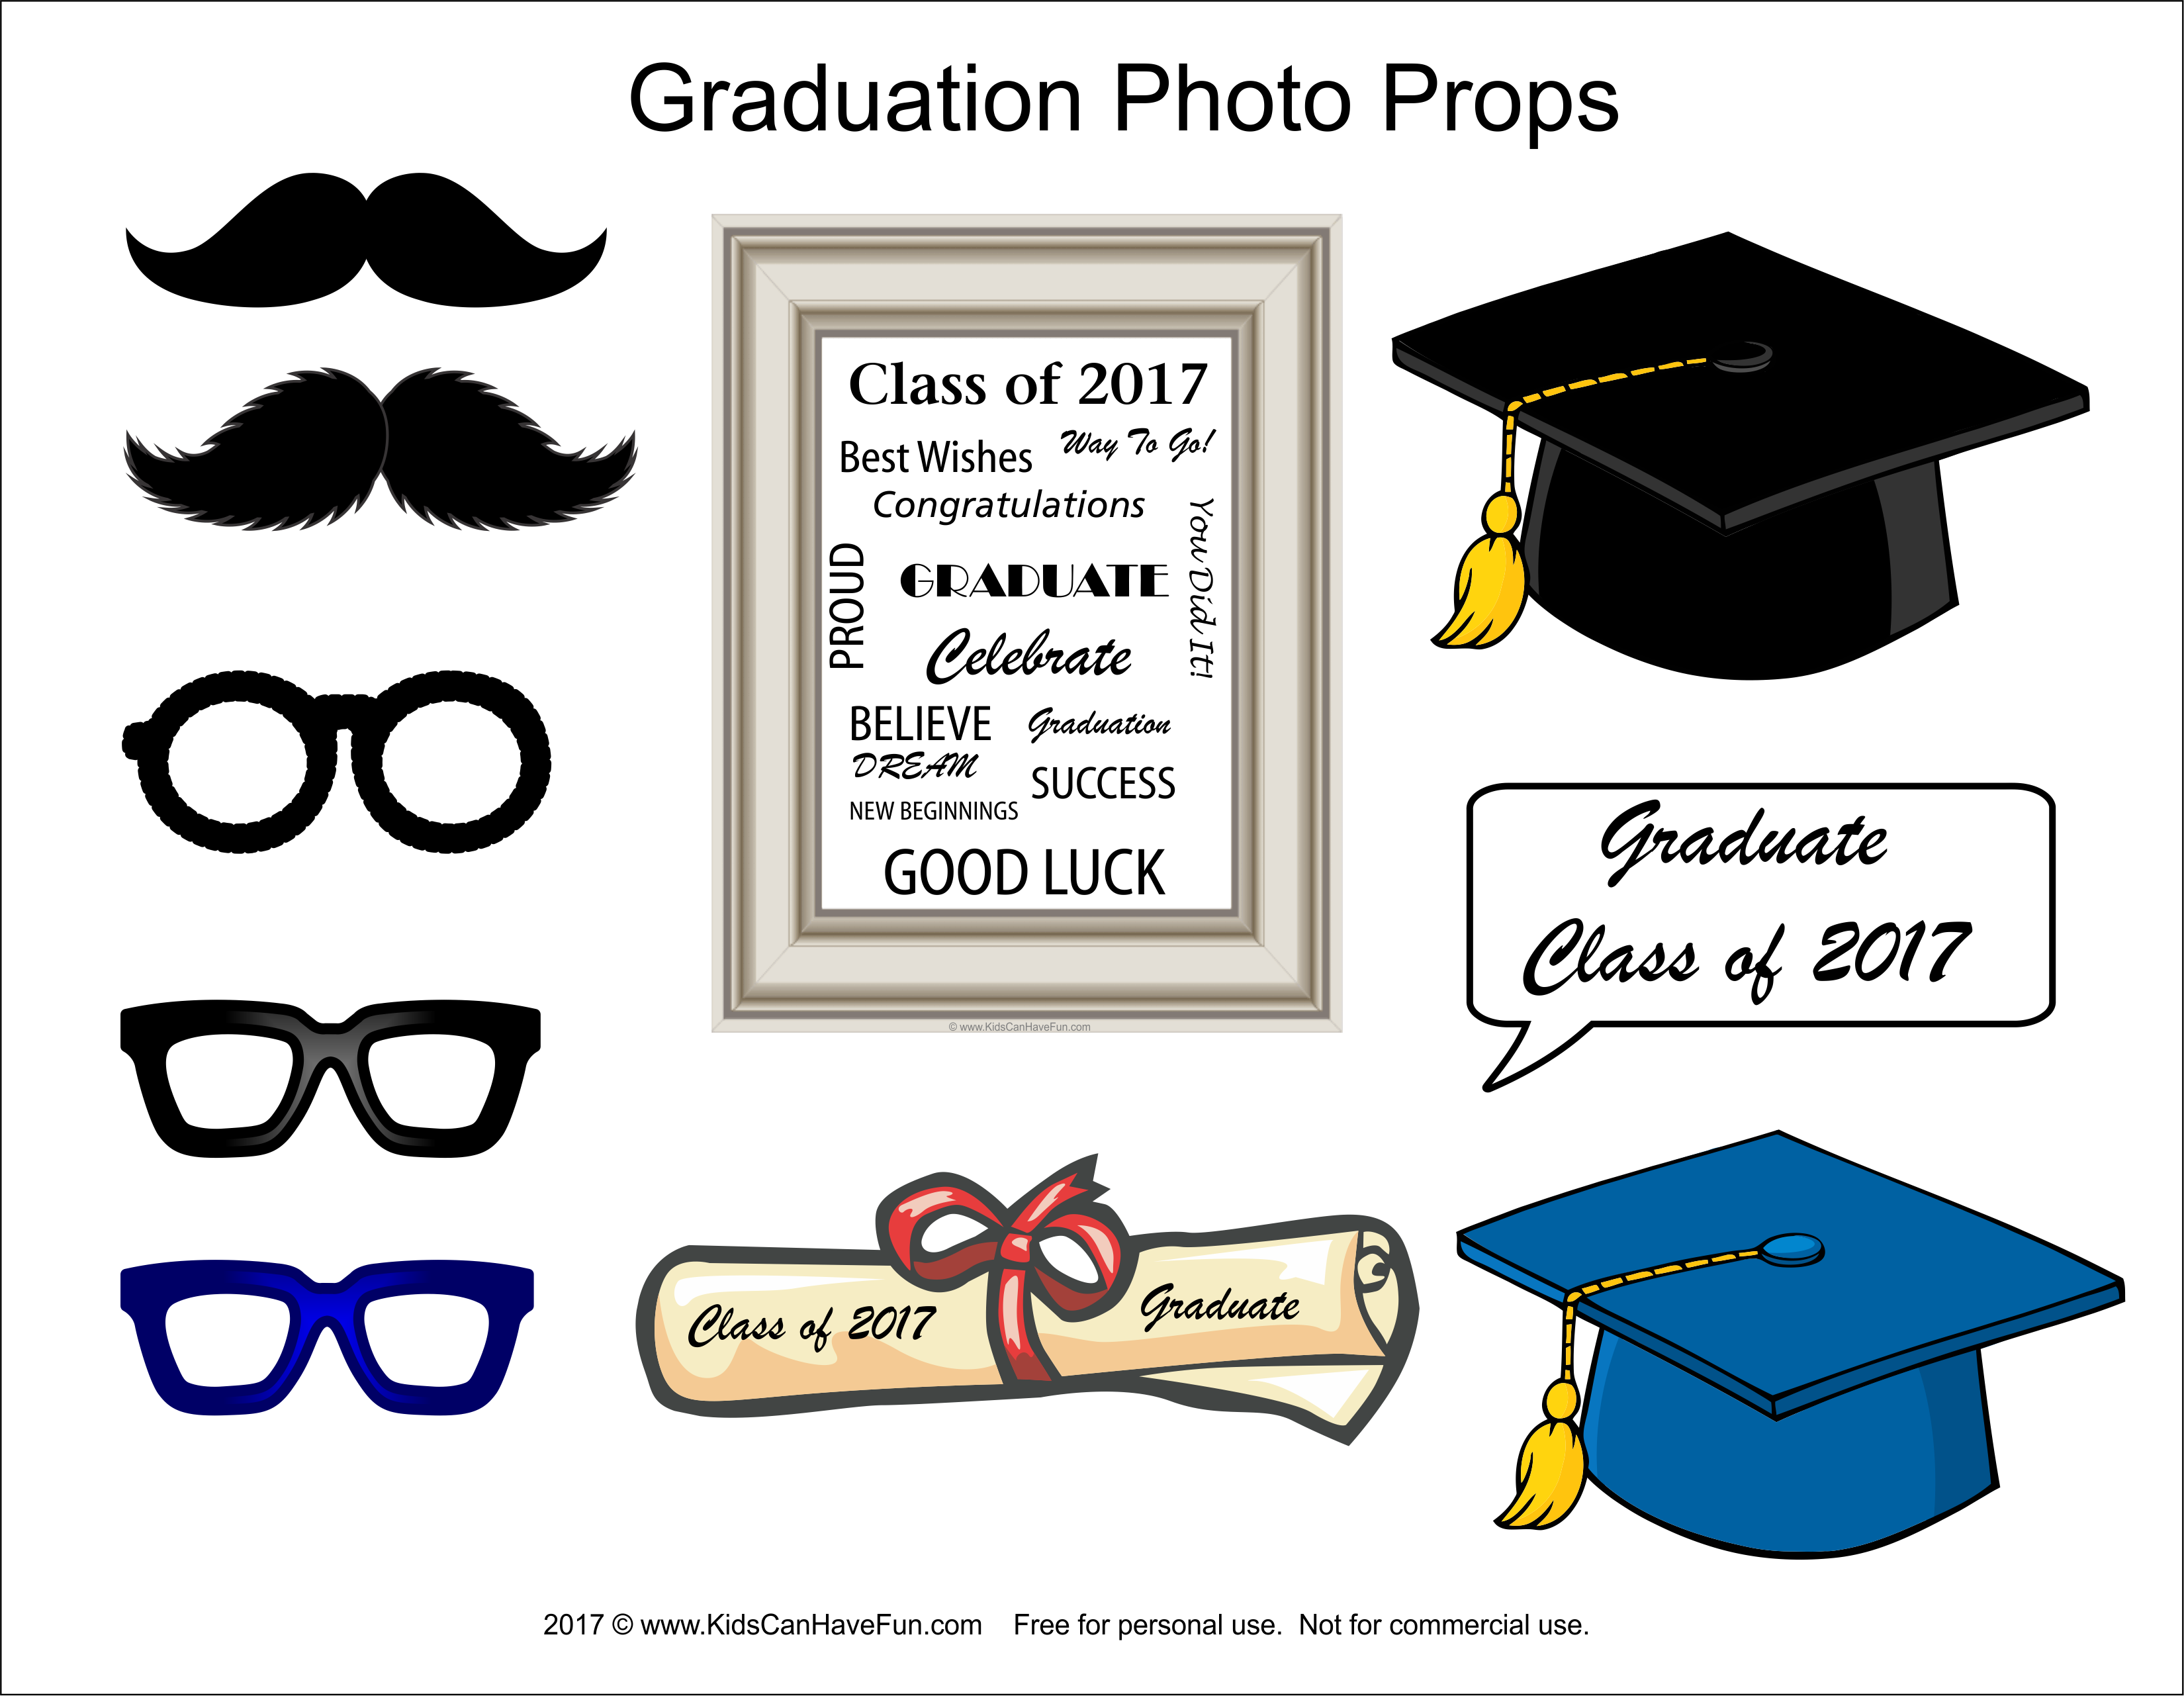 Diy graduation 2017 photo booth props httpkidscanhavefun diy graduation 2017 photo booth props httpkidscanhavefun pronofoot35fo Gallery